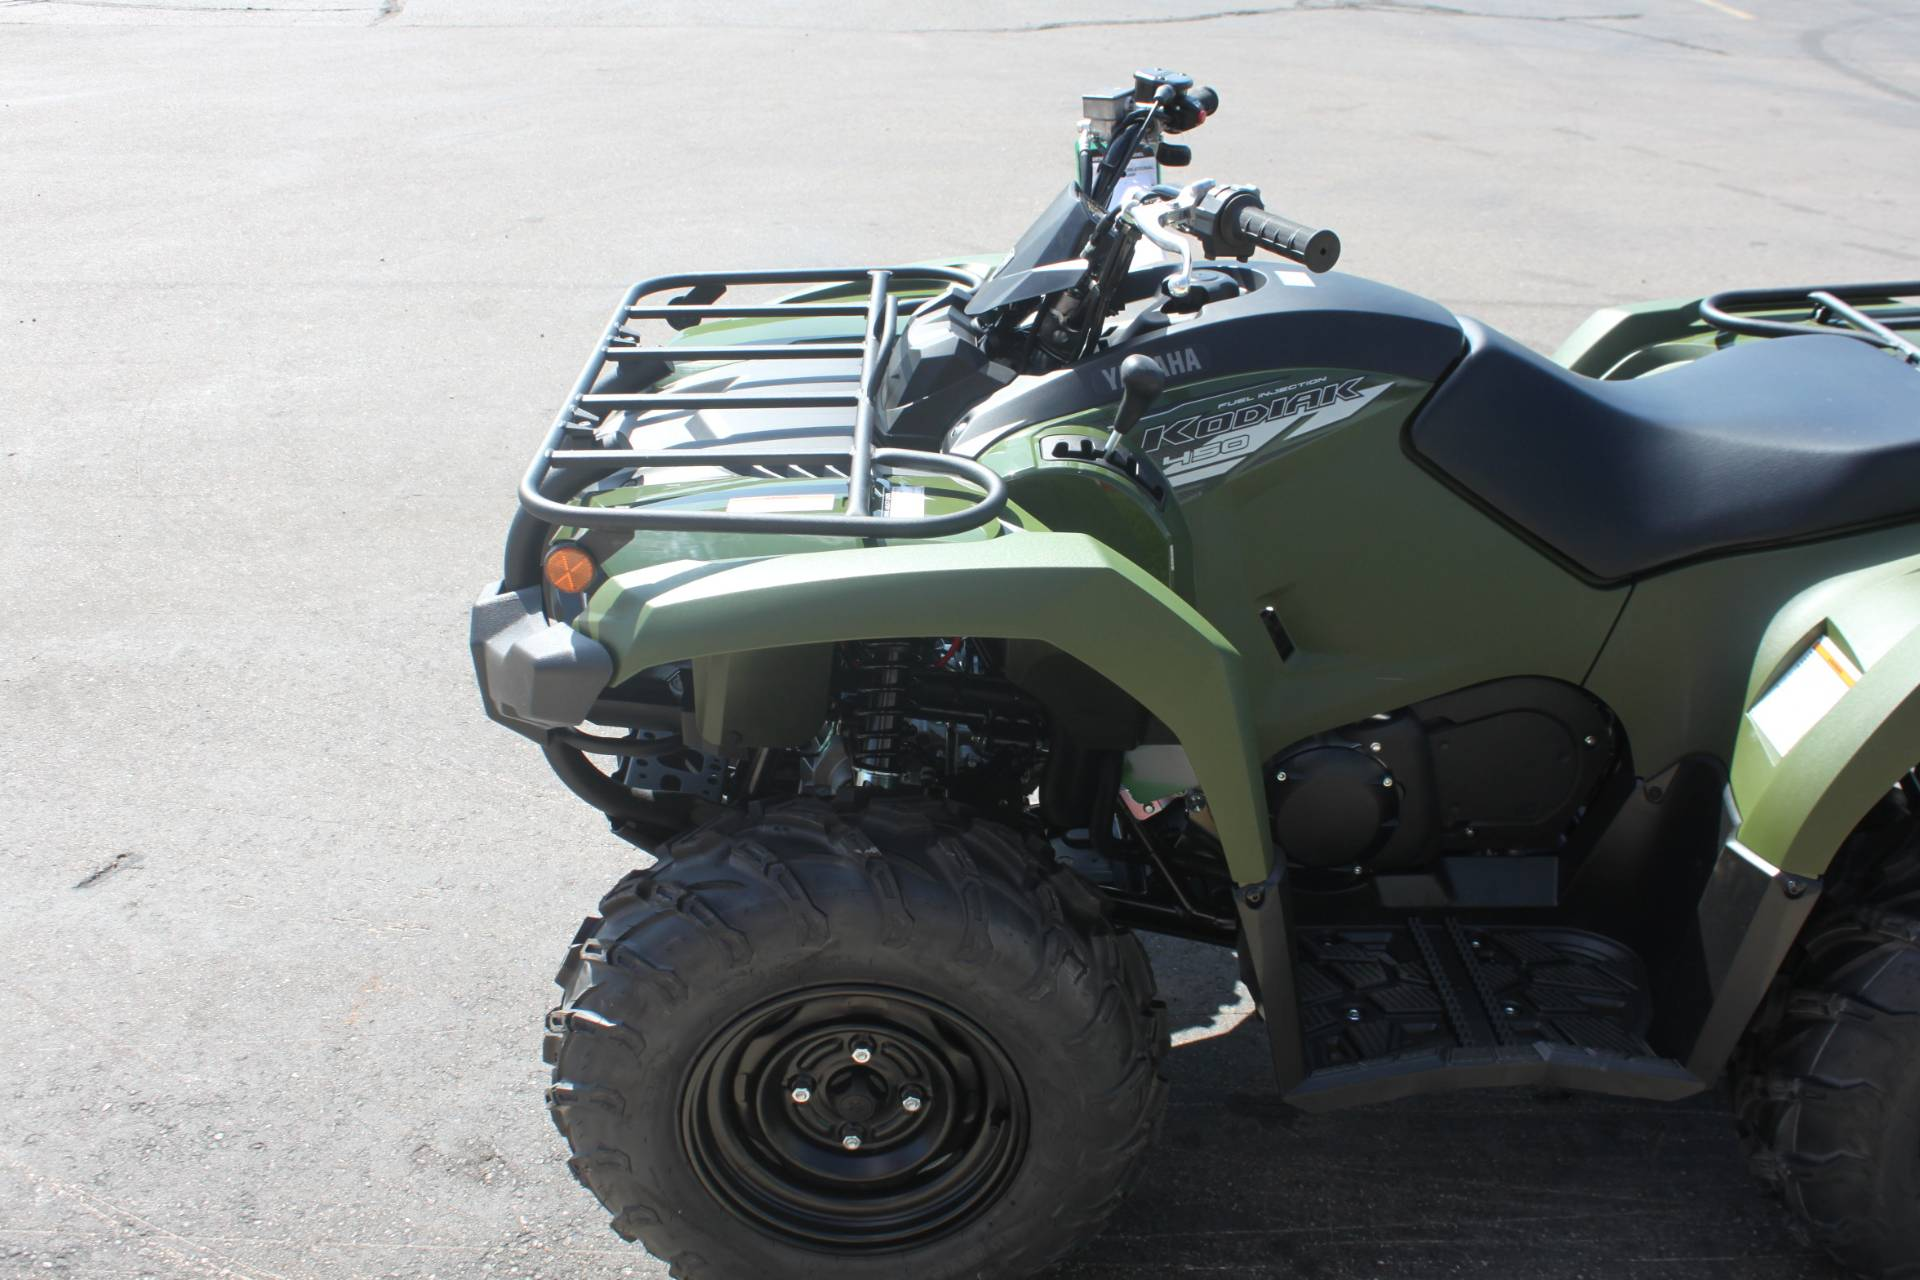 2020 Yamaha Kodiak 450 in Janesville, Wisconsin - Photo 20